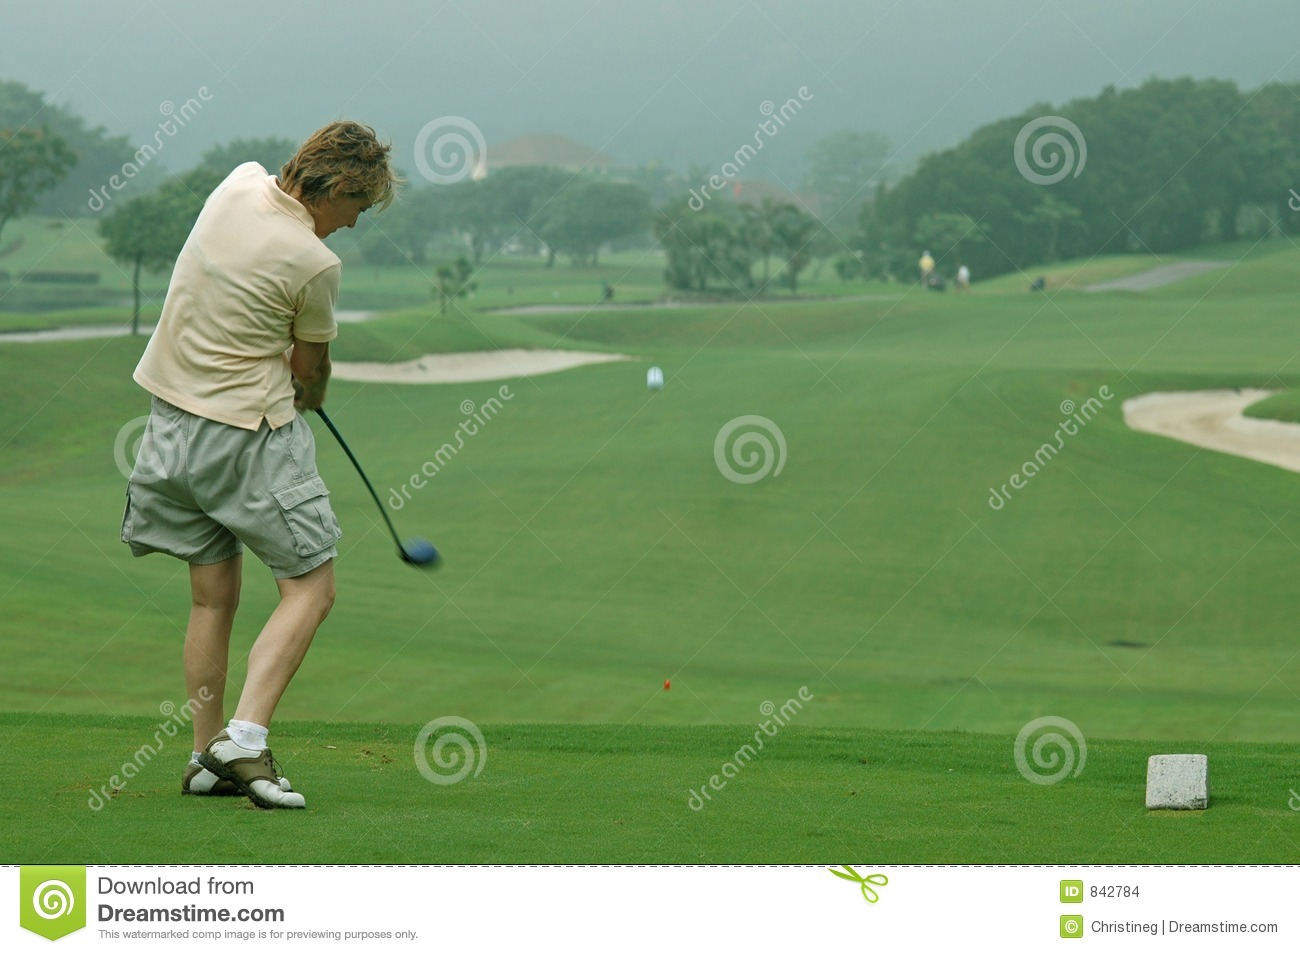 Woman golfer driving off the tee